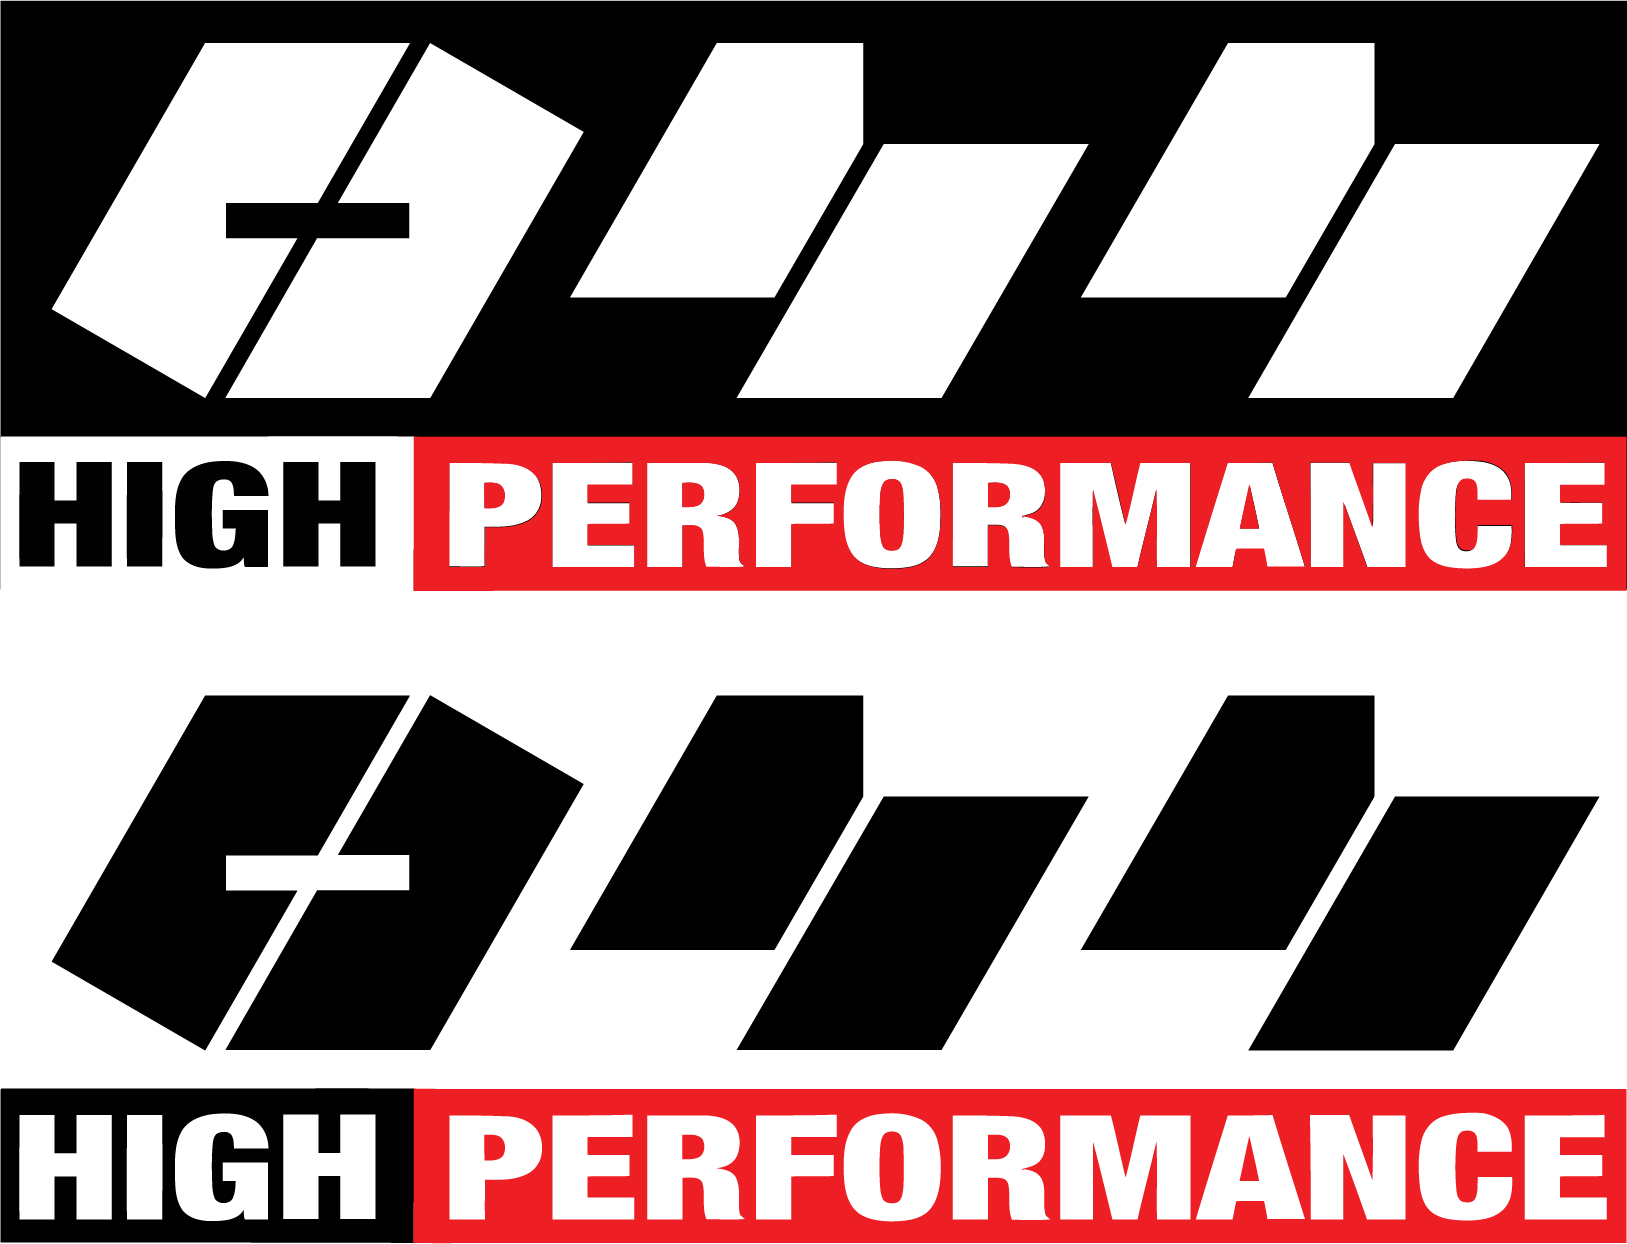 044 High Performance